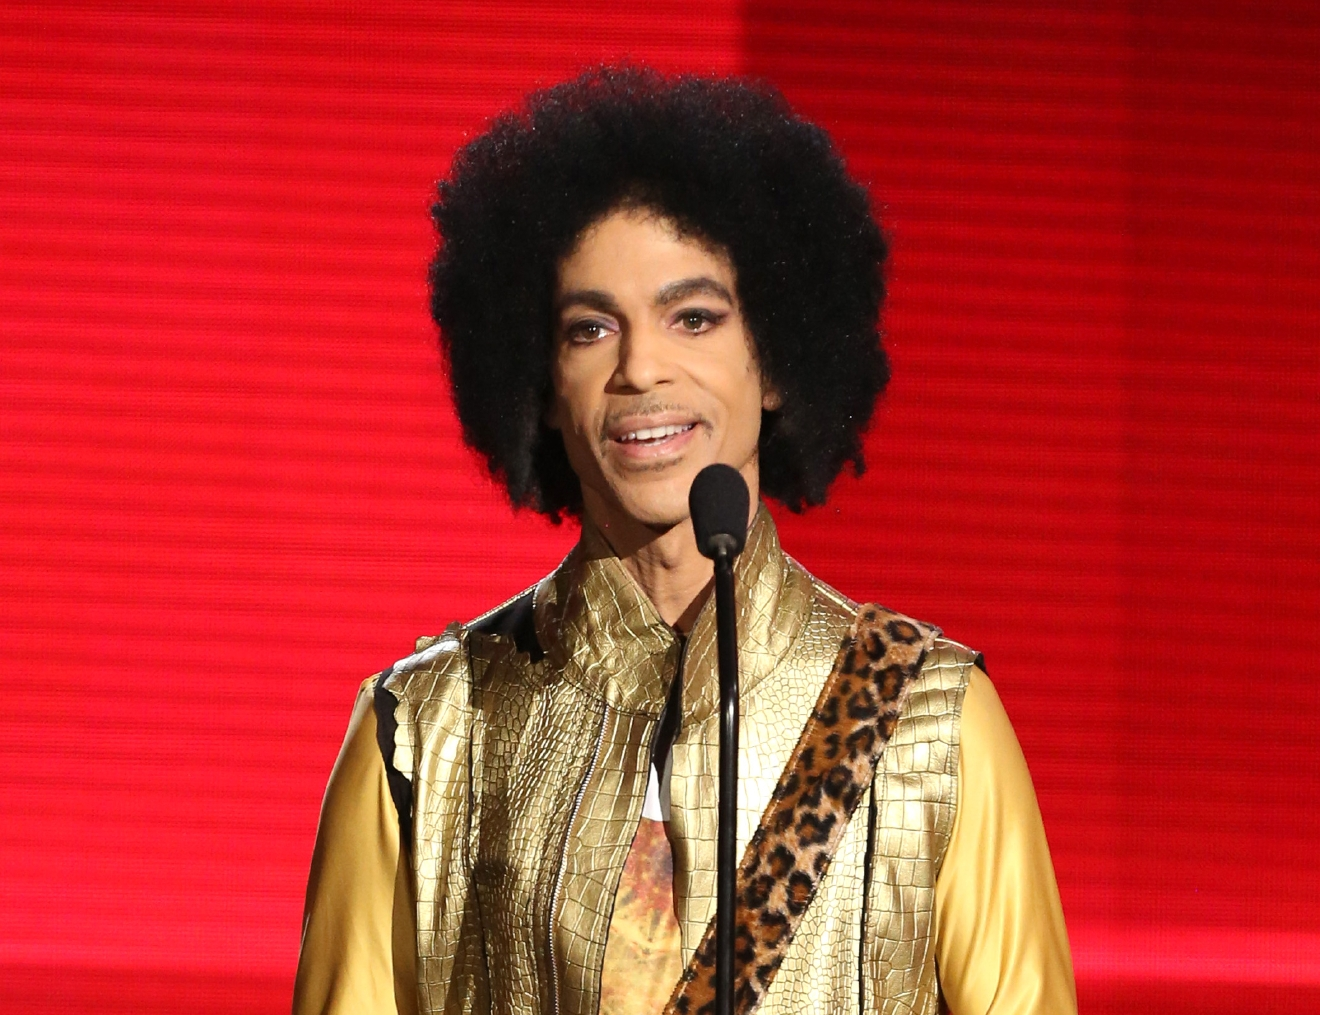 FILE - In this Nov. 22, 2015 file photo, Prince presents the award for favorite album - soul/R&B at the American Music Awards in Los Angeles. A famous bassist and longtime friend of pop megastar Prince says the artist found Â?real happinessÂ? in his faith and could stay up all night talking about the Bible. Larry Graham tells The Associated Press that Prince became a JehovahÂ?s Witness later in life and that it changed the starÂ?s music and lifestyle. (Photo by Matt Sayles/Invision/AP, File)